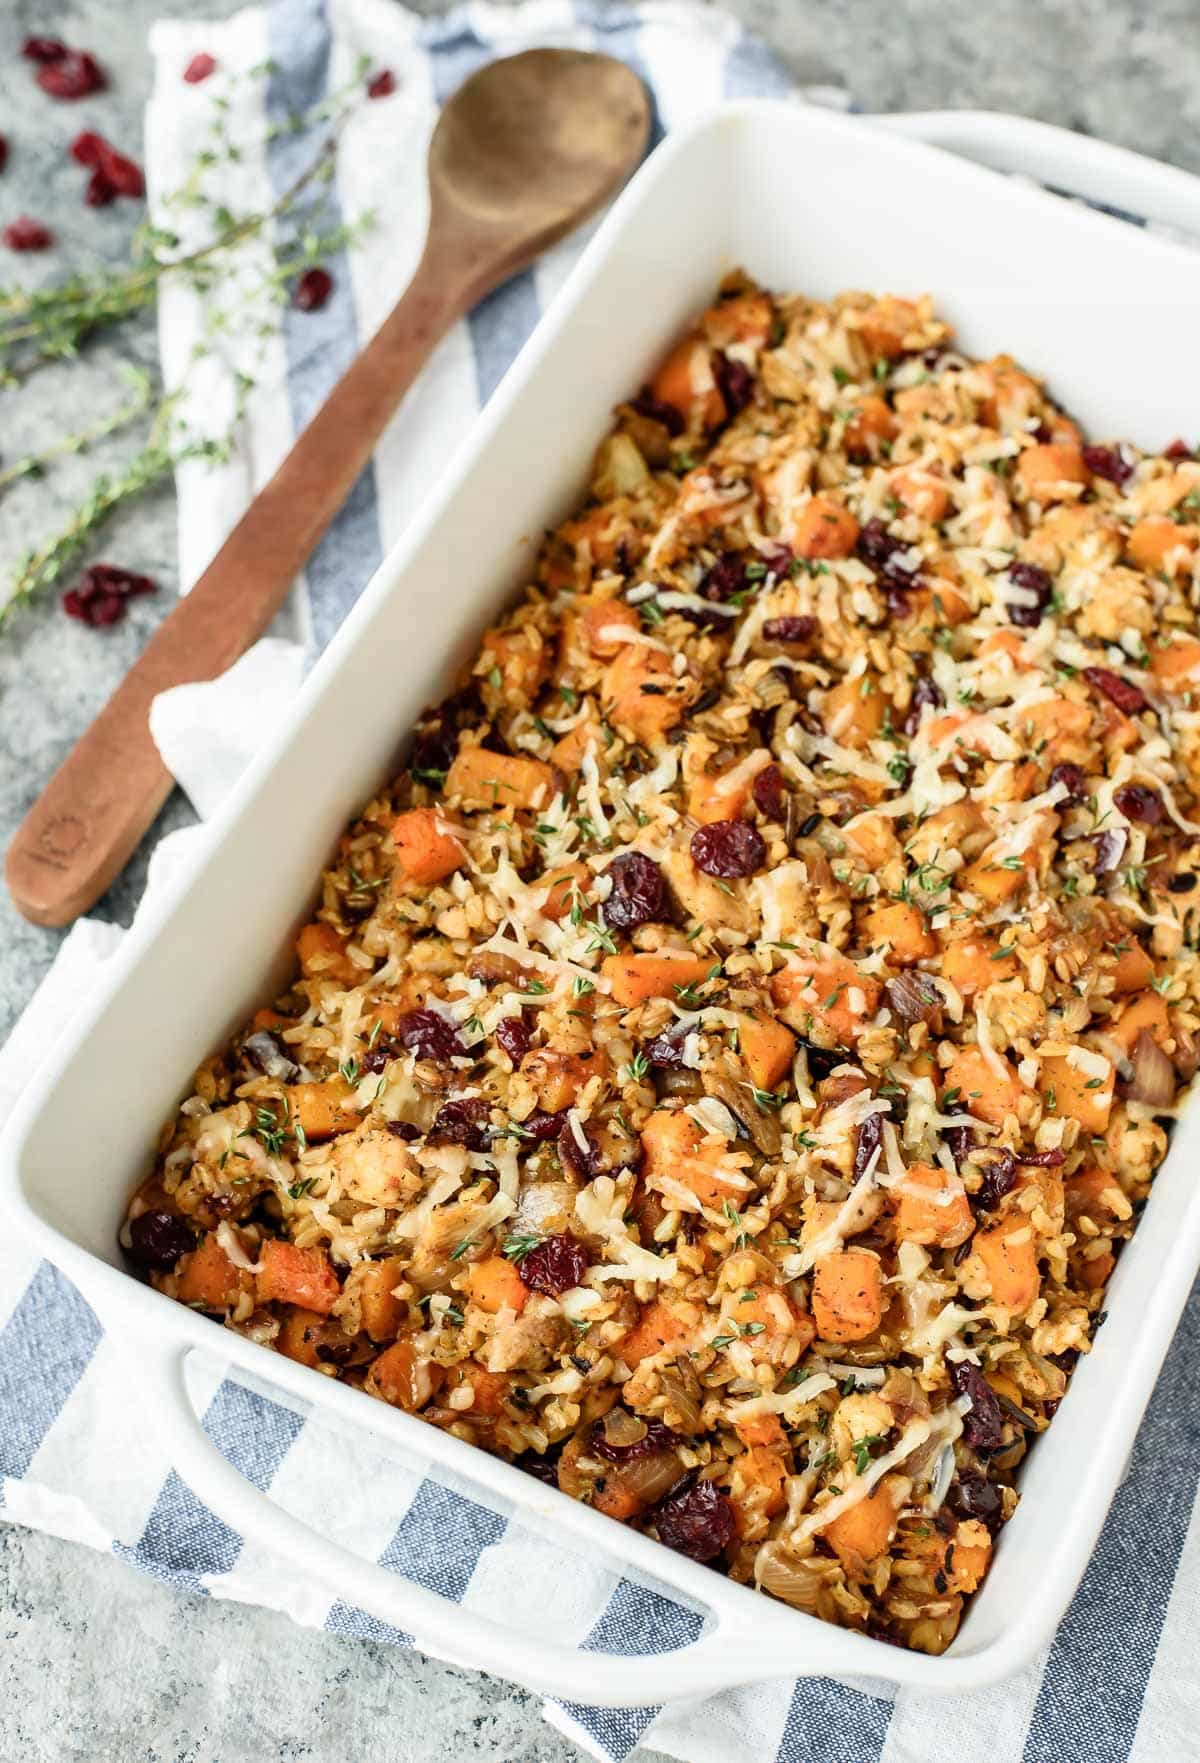 Chicken and Wild Rice Casserole with Butternut Squash and Cranberries from wellplated.com on foodiecrush.com